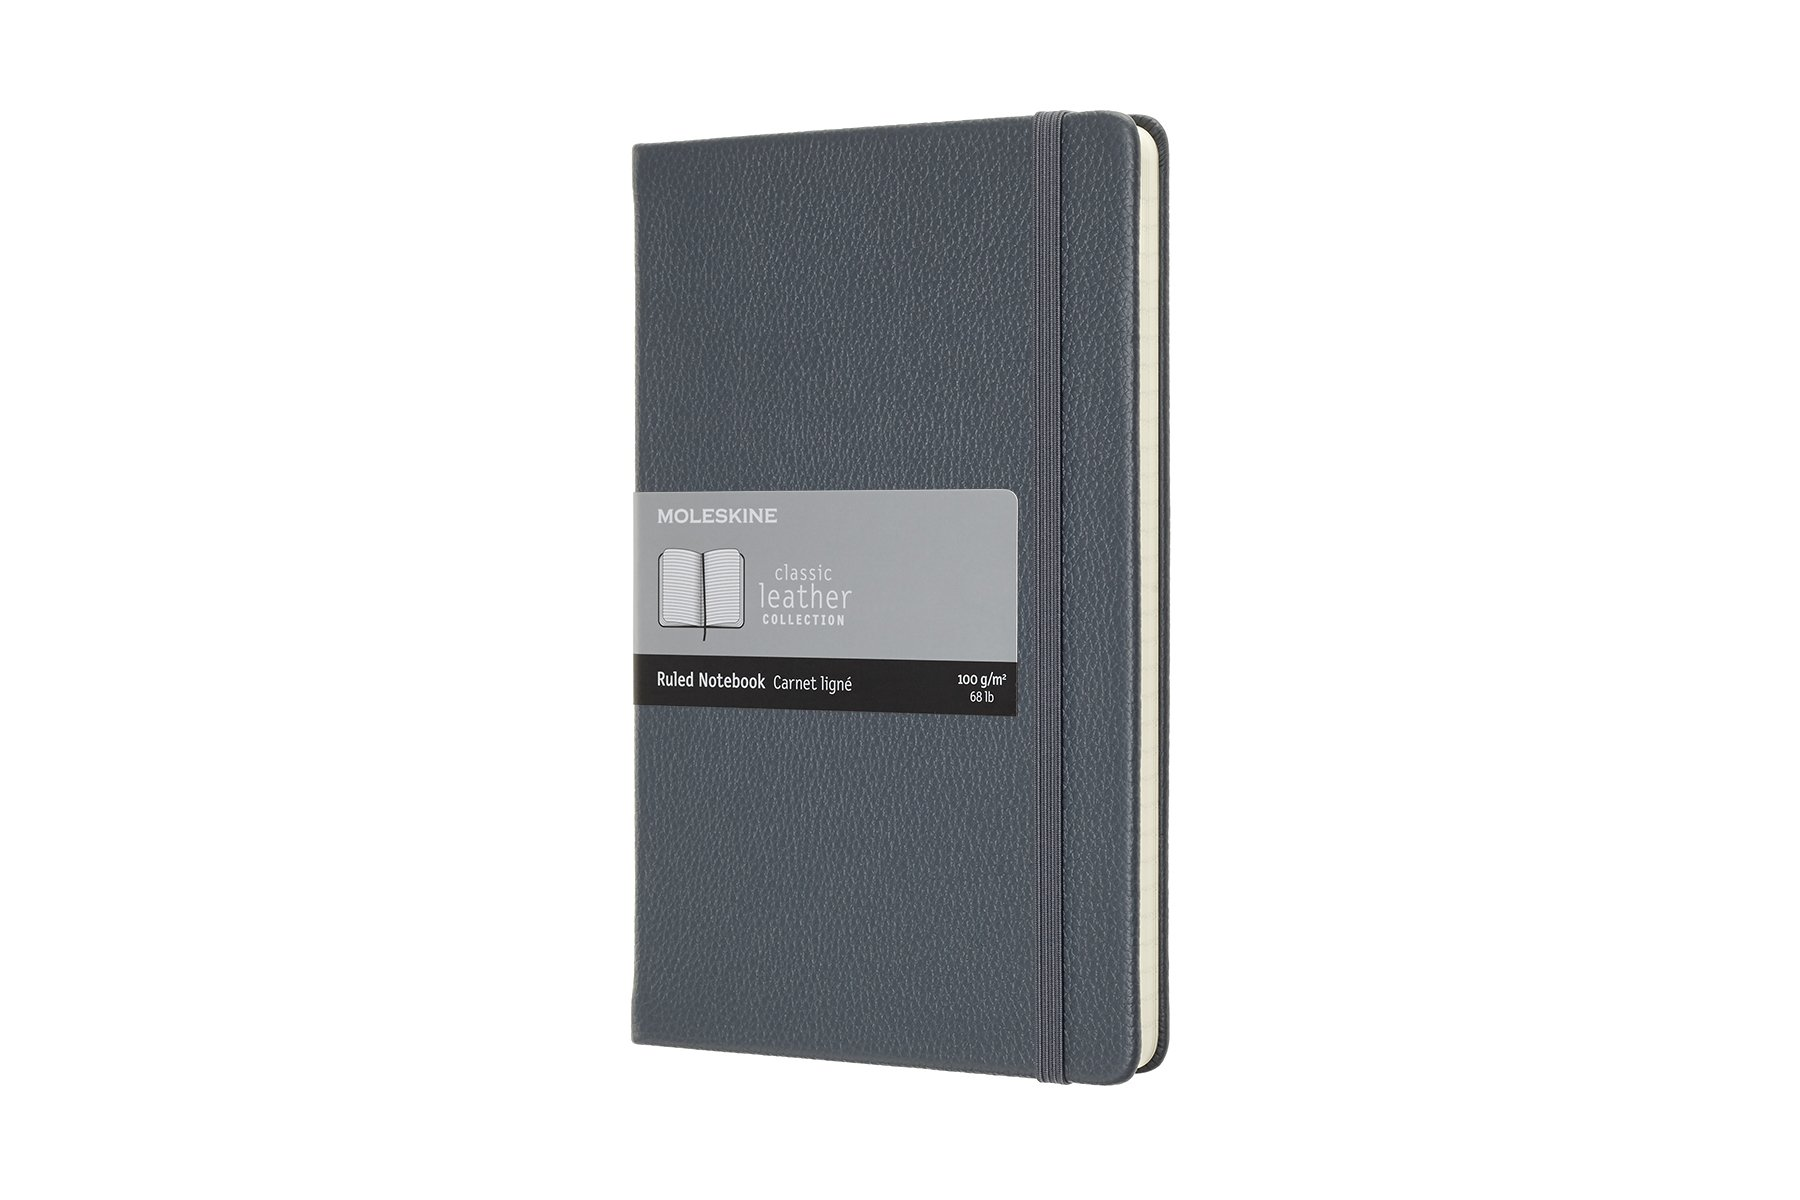 Moleskine Classic Hard Cover Leather Notebook, Ruled, Large.